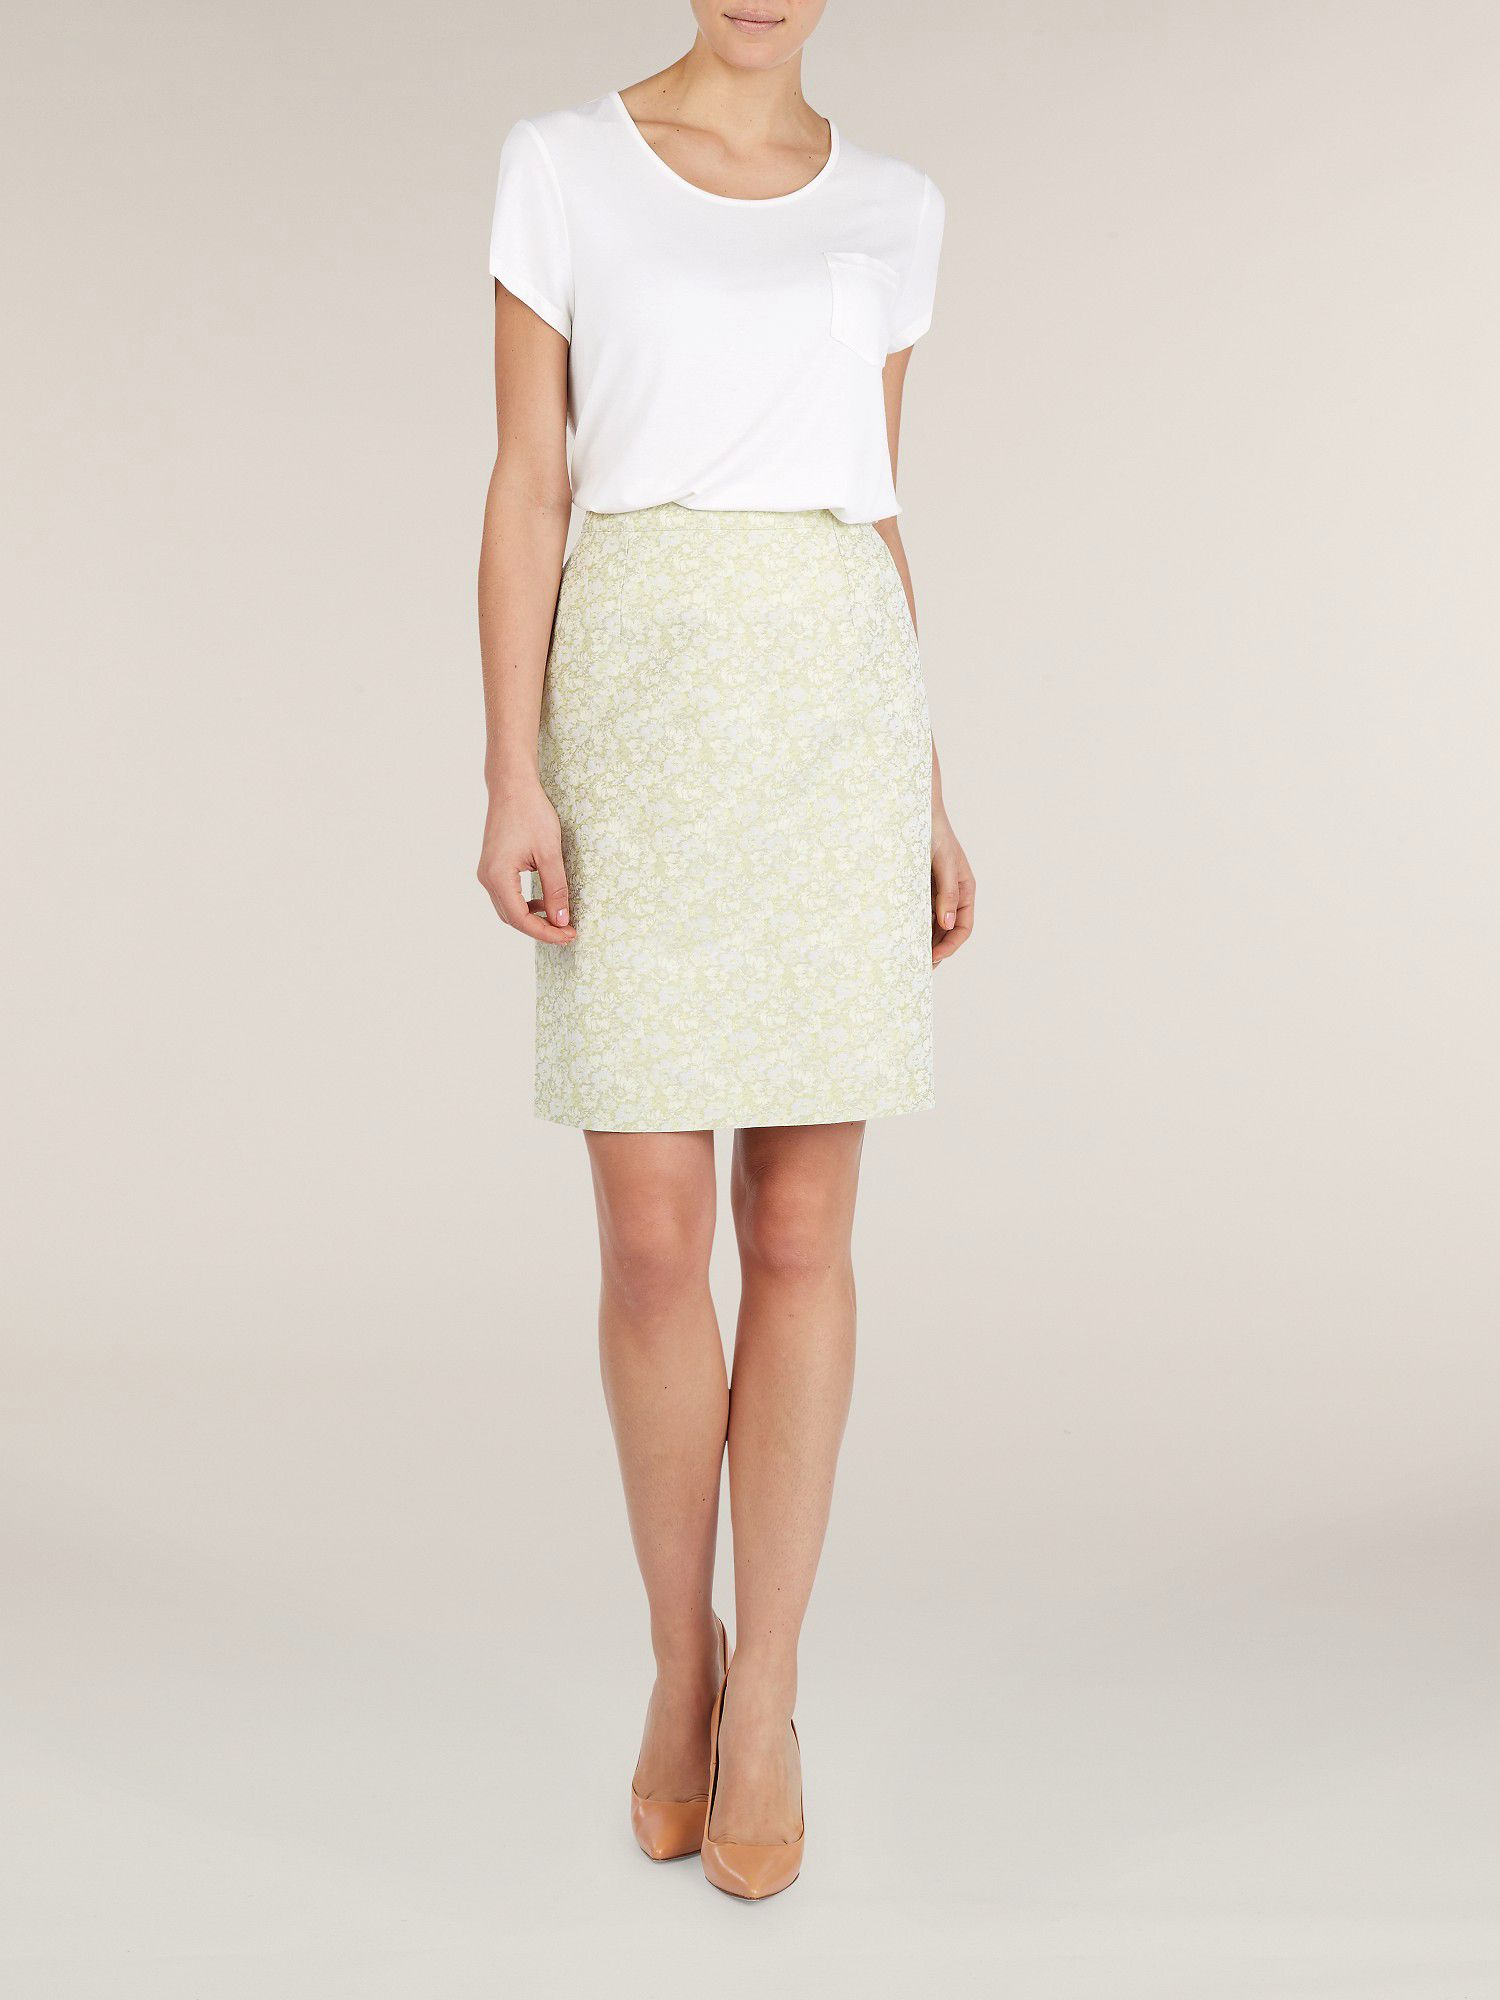 Apple green jacquard skirt